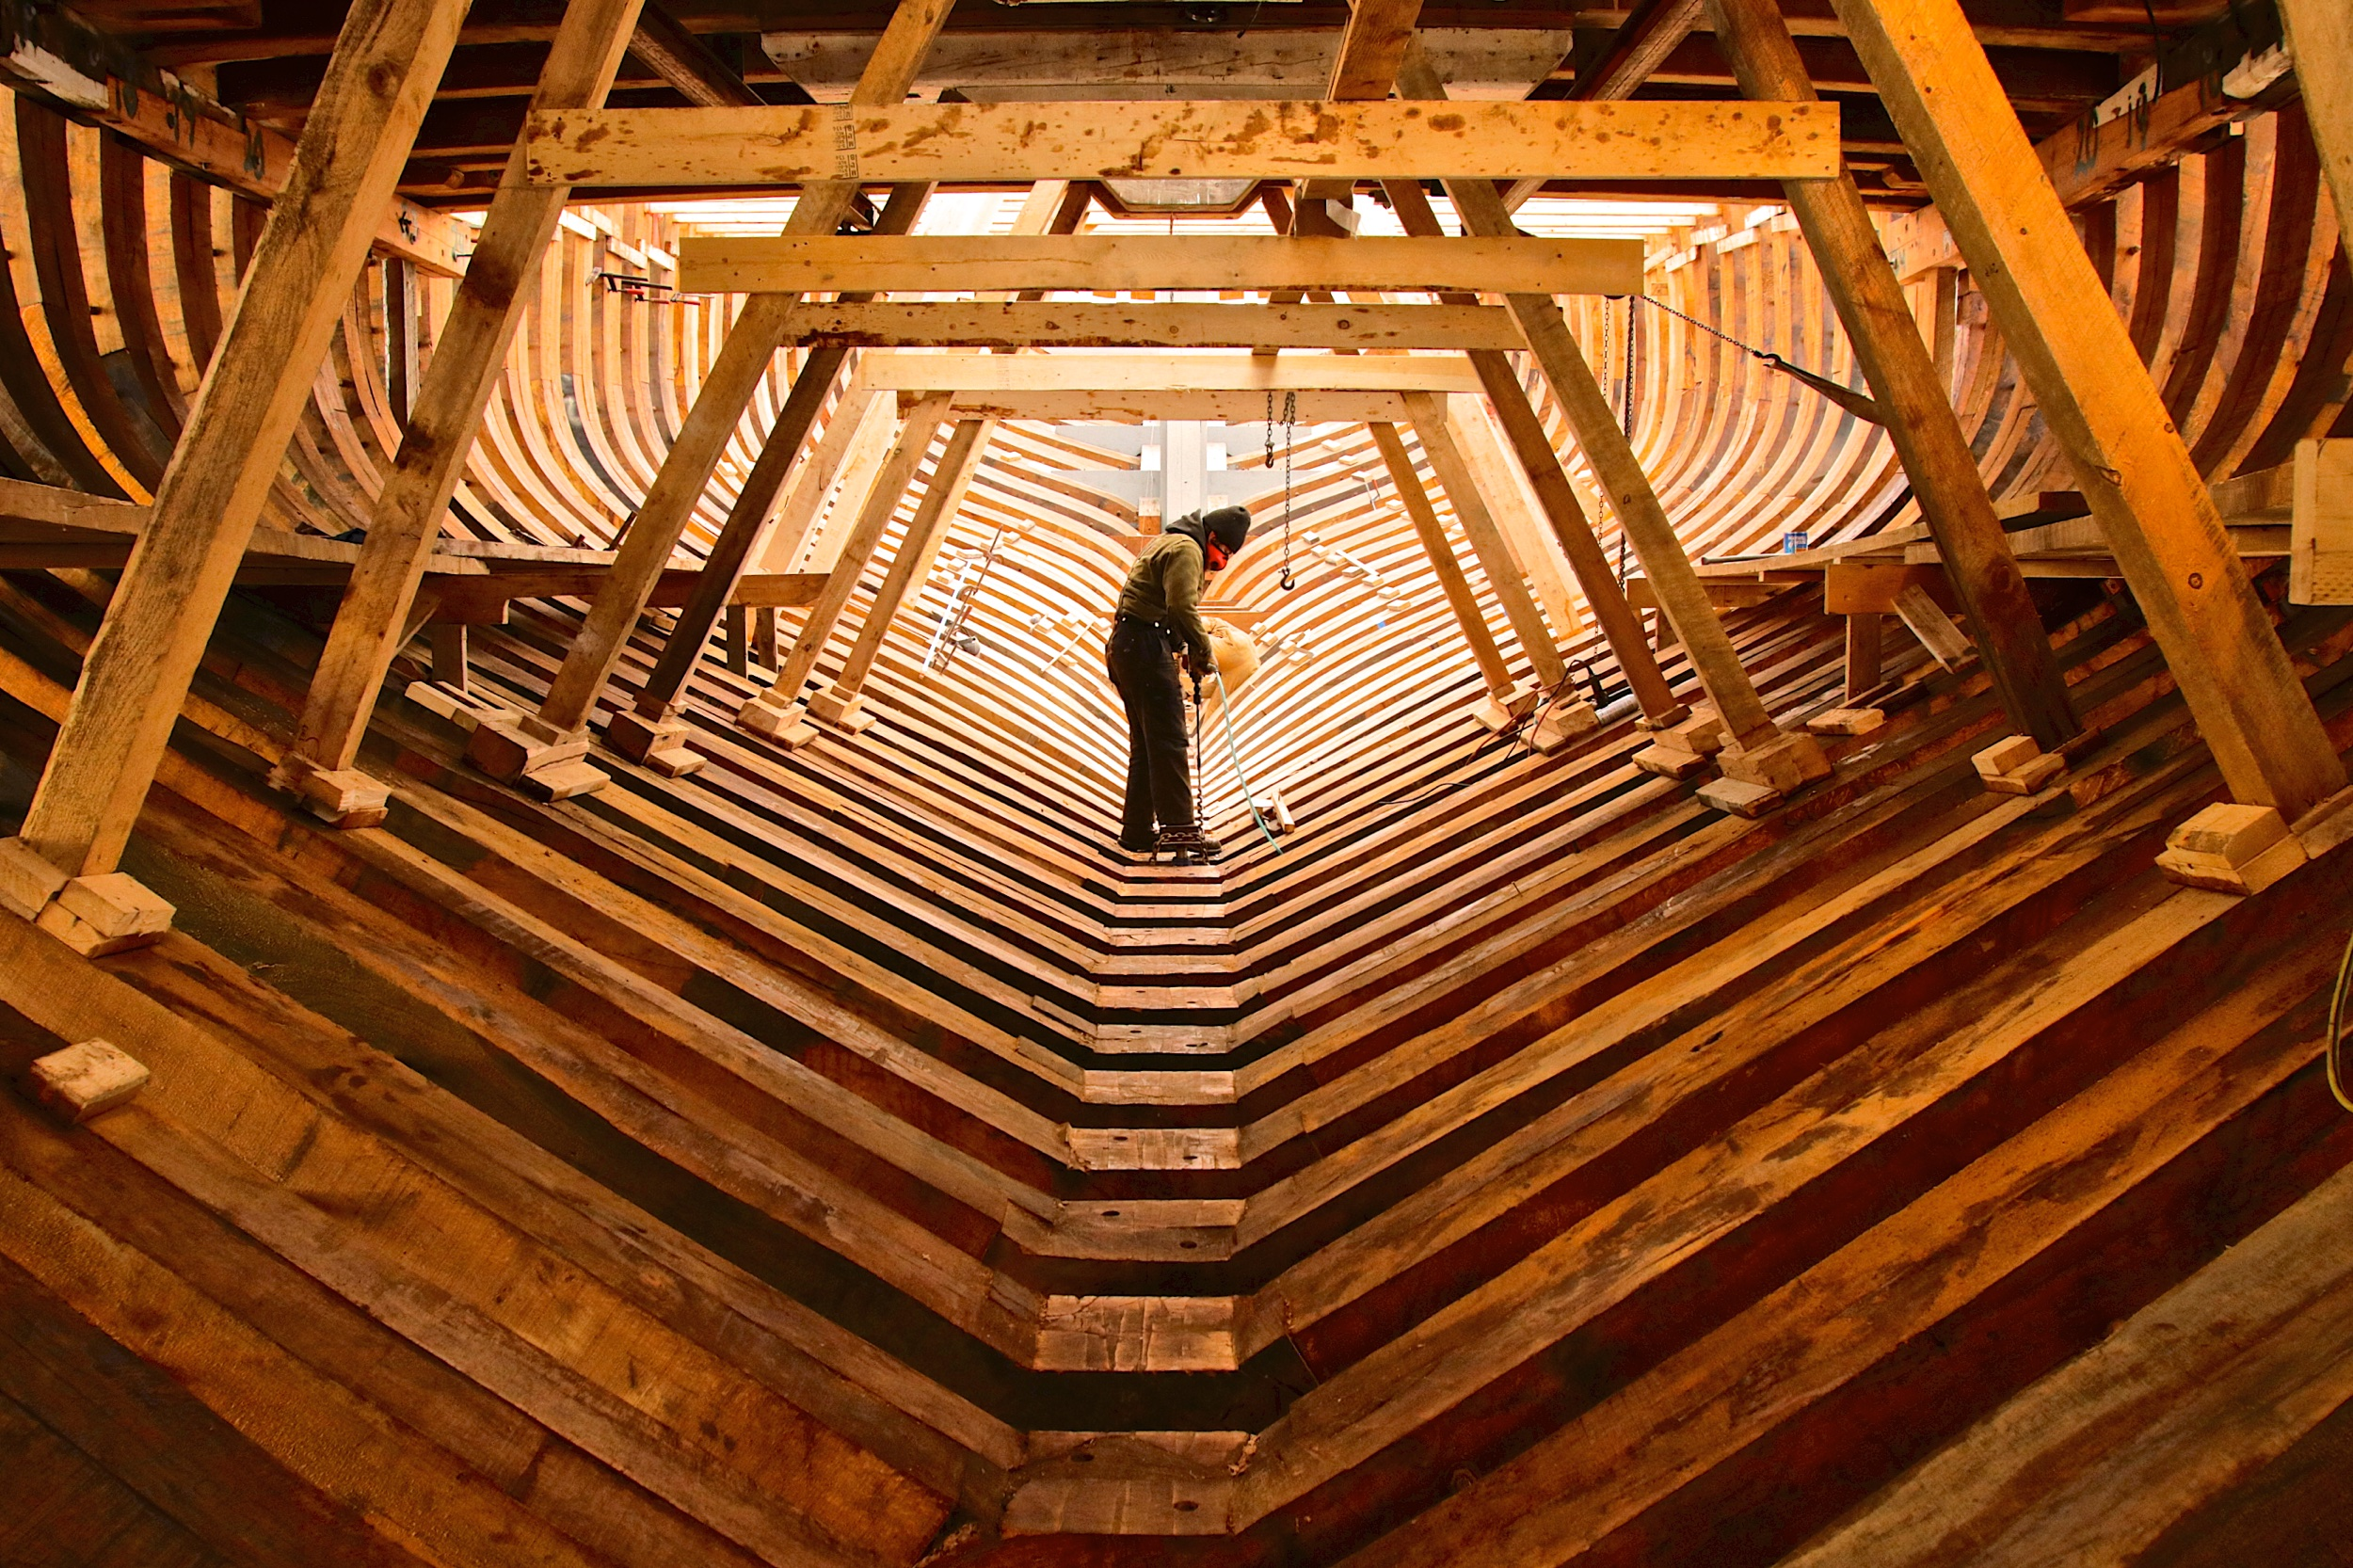 May: Ernestina-Morrissey. The Shipyard In Boothbay Harbor.